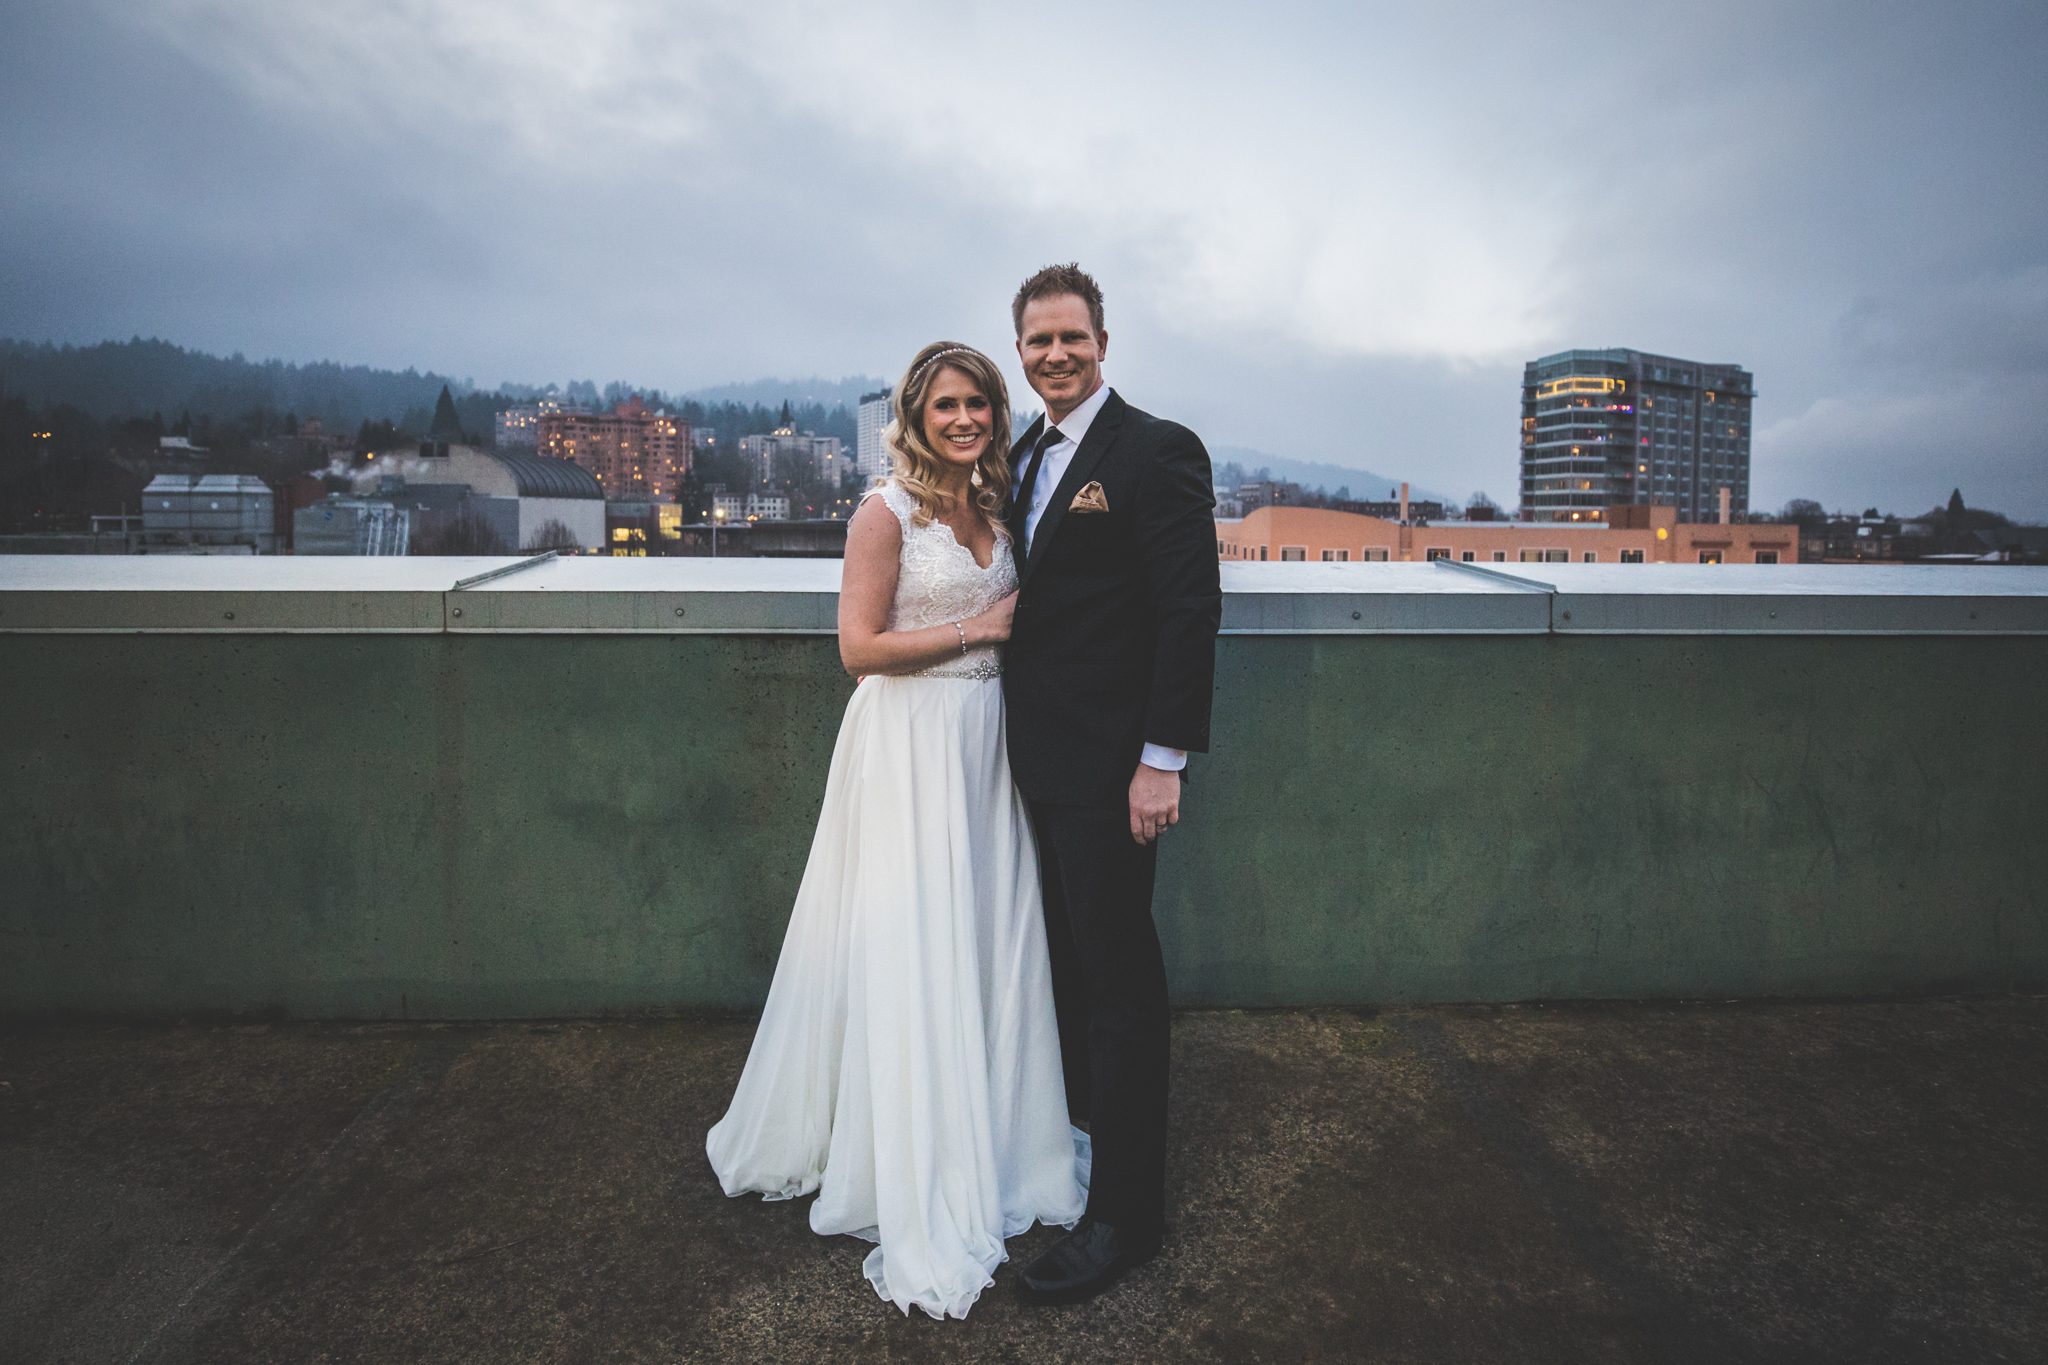 Megan and Steven - NYE Portland Wedding   A day long New Years Eve party at the Hotel Deluxe in Downtown Portland! Beautiful First Look by the antique elevators, freezing outdoor portraits (!) and so much dancing...